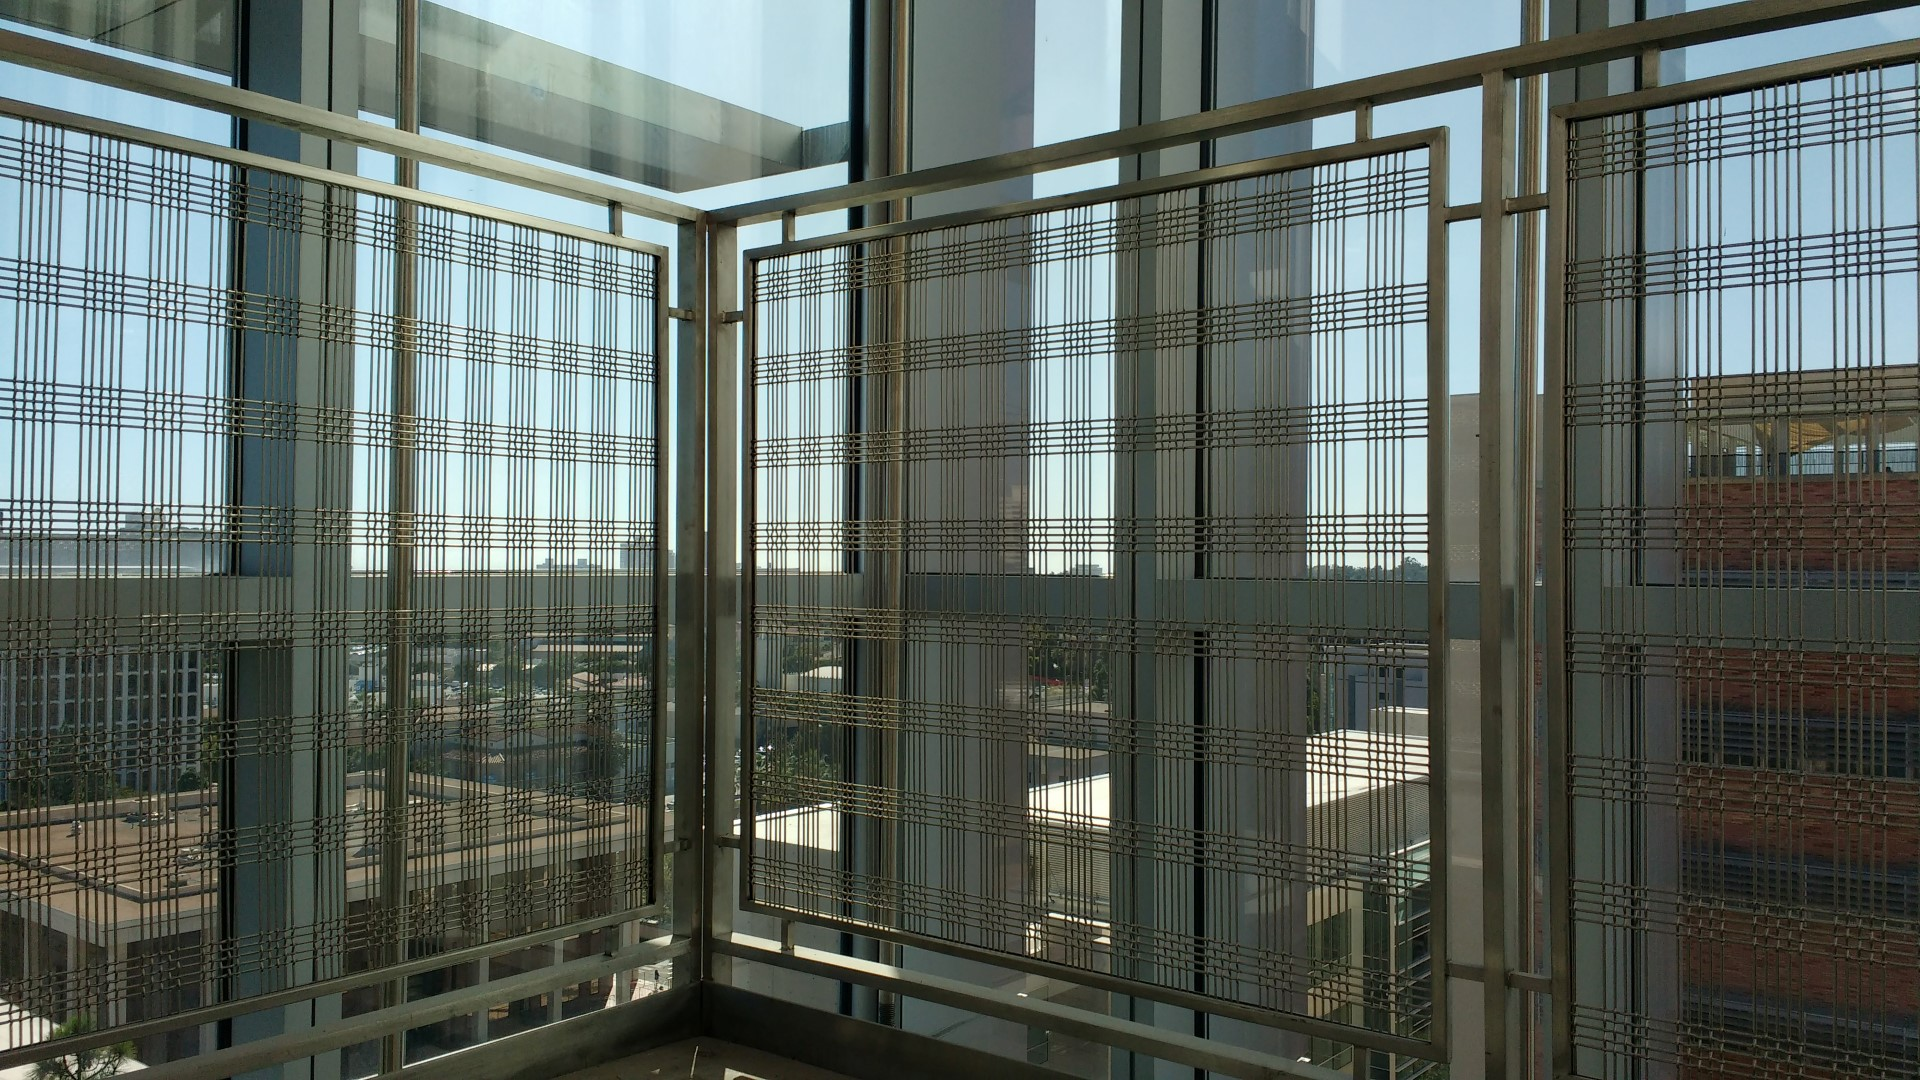 Banker Wire mesh allows for the transmission of natural light in this glass enclosed stair tower.